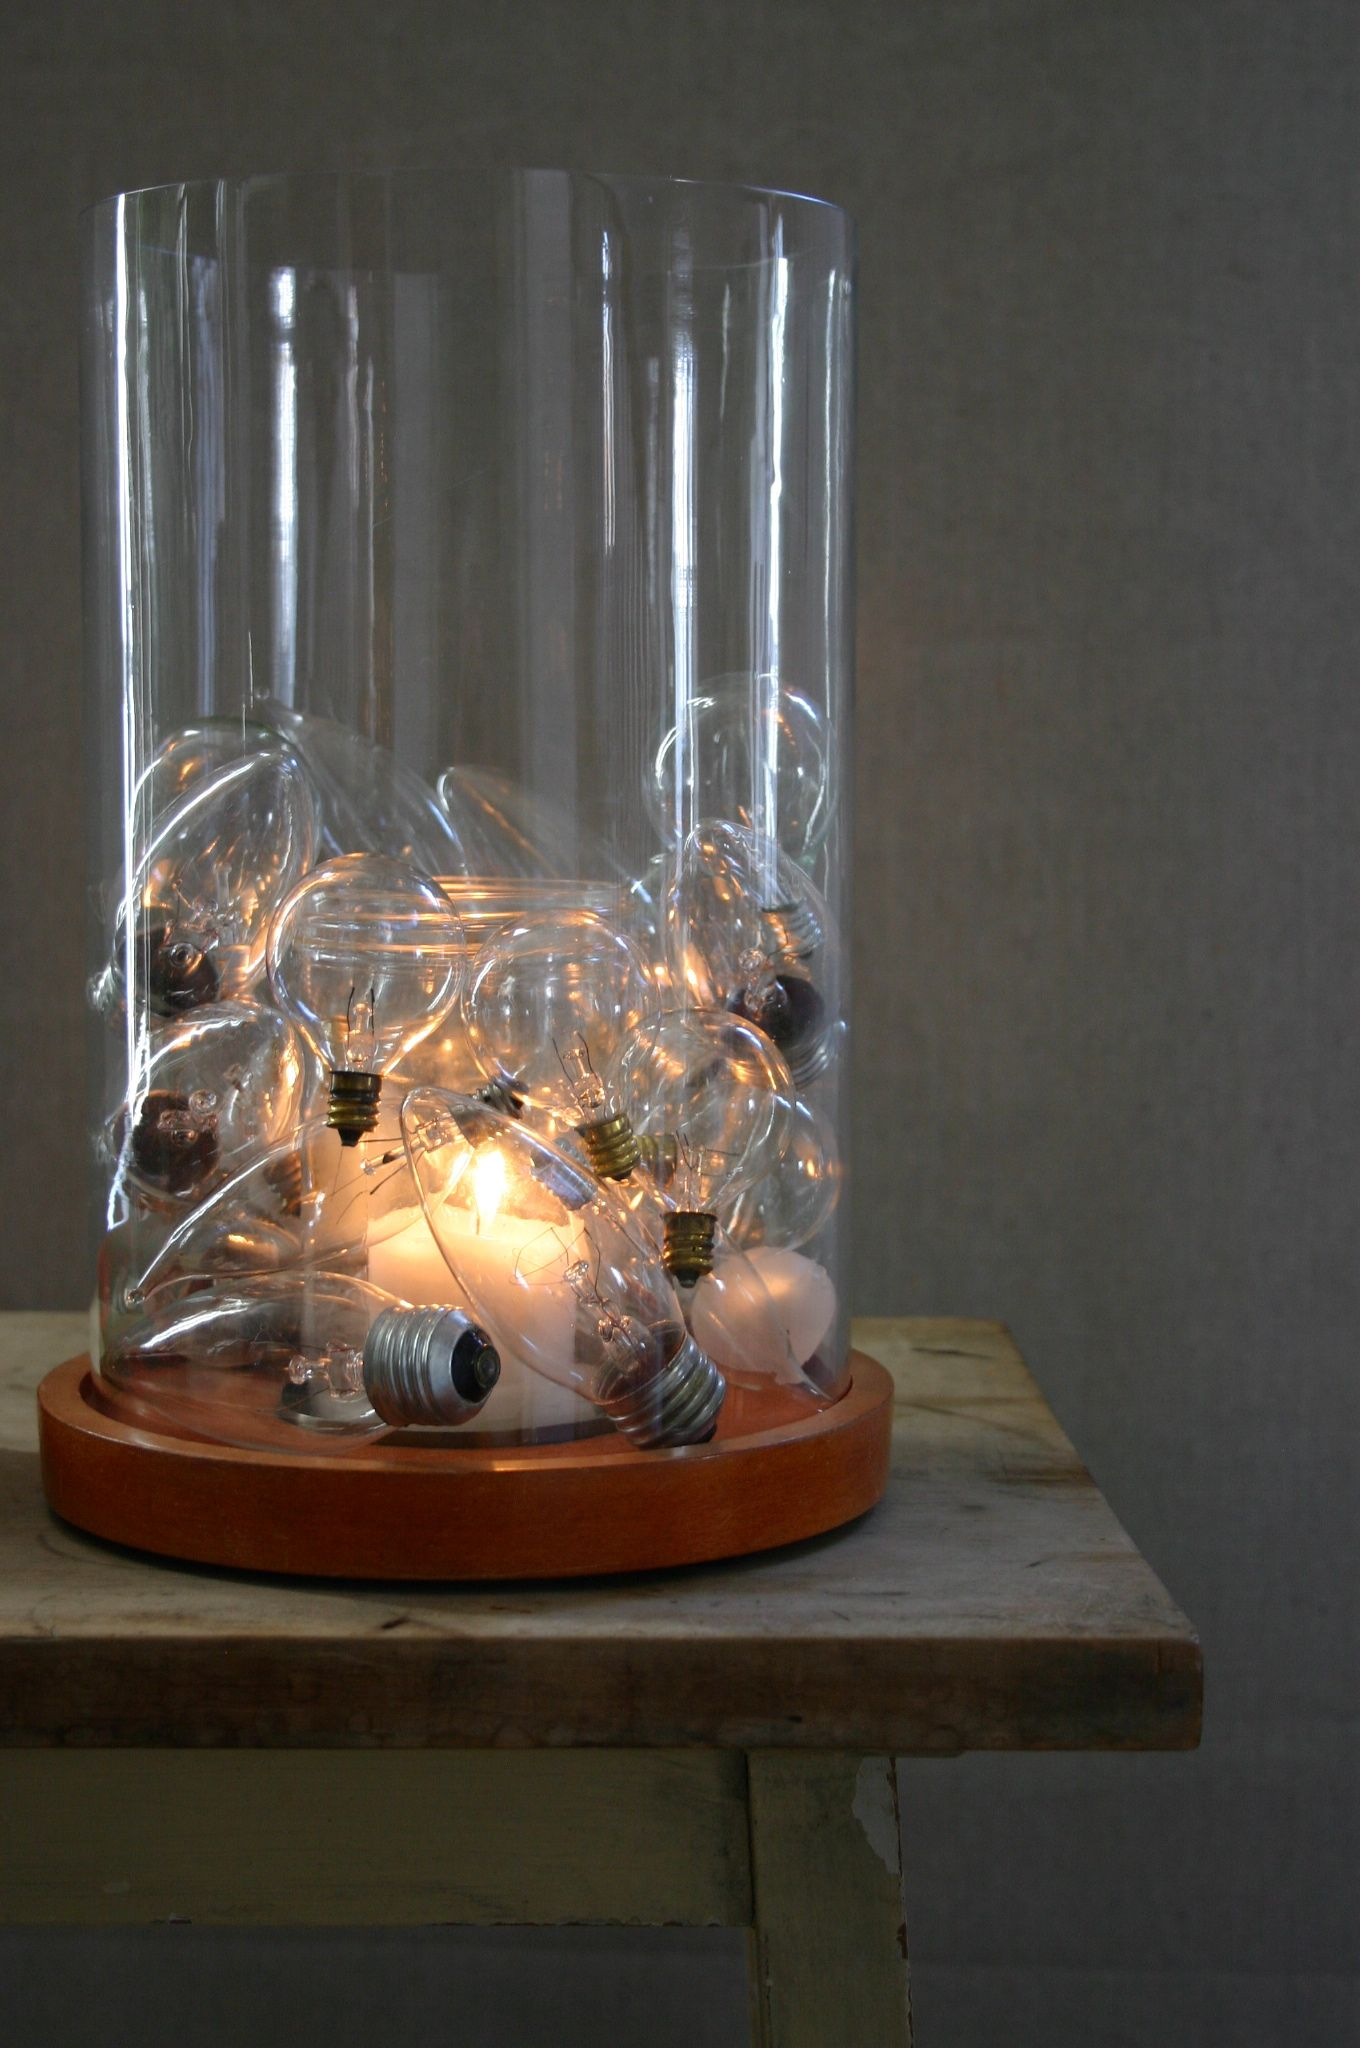 Lightbulbcenterpiece f l y n n pinterest light bulb bulbs and